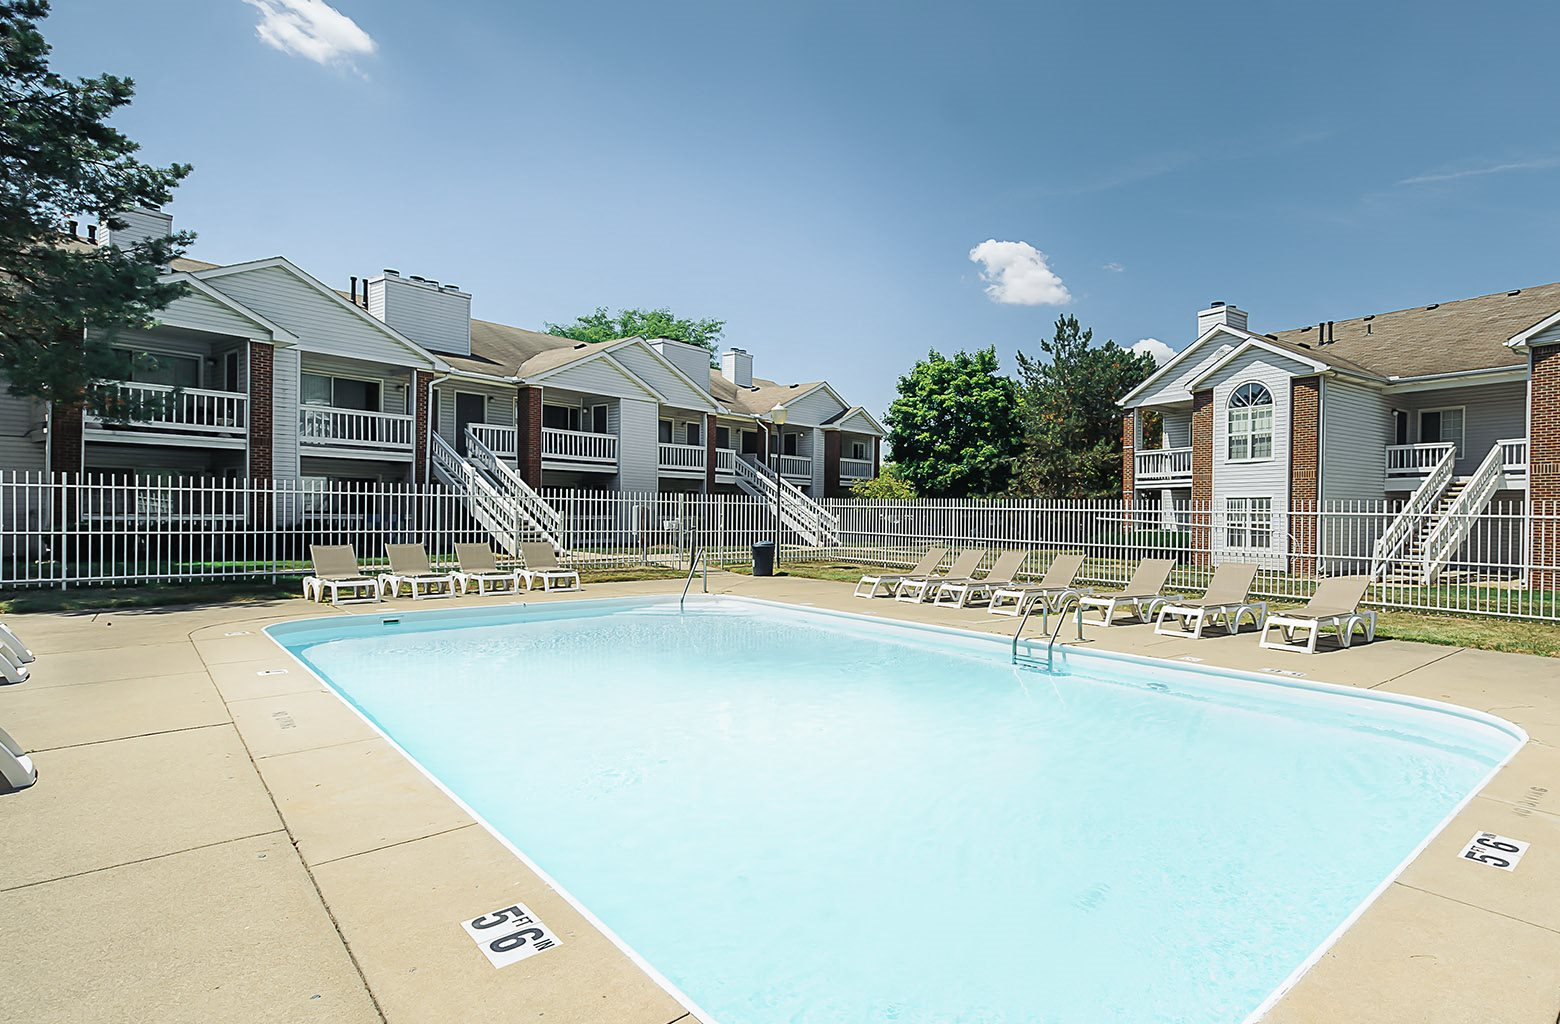 Apartments in Toledo, OH with pool